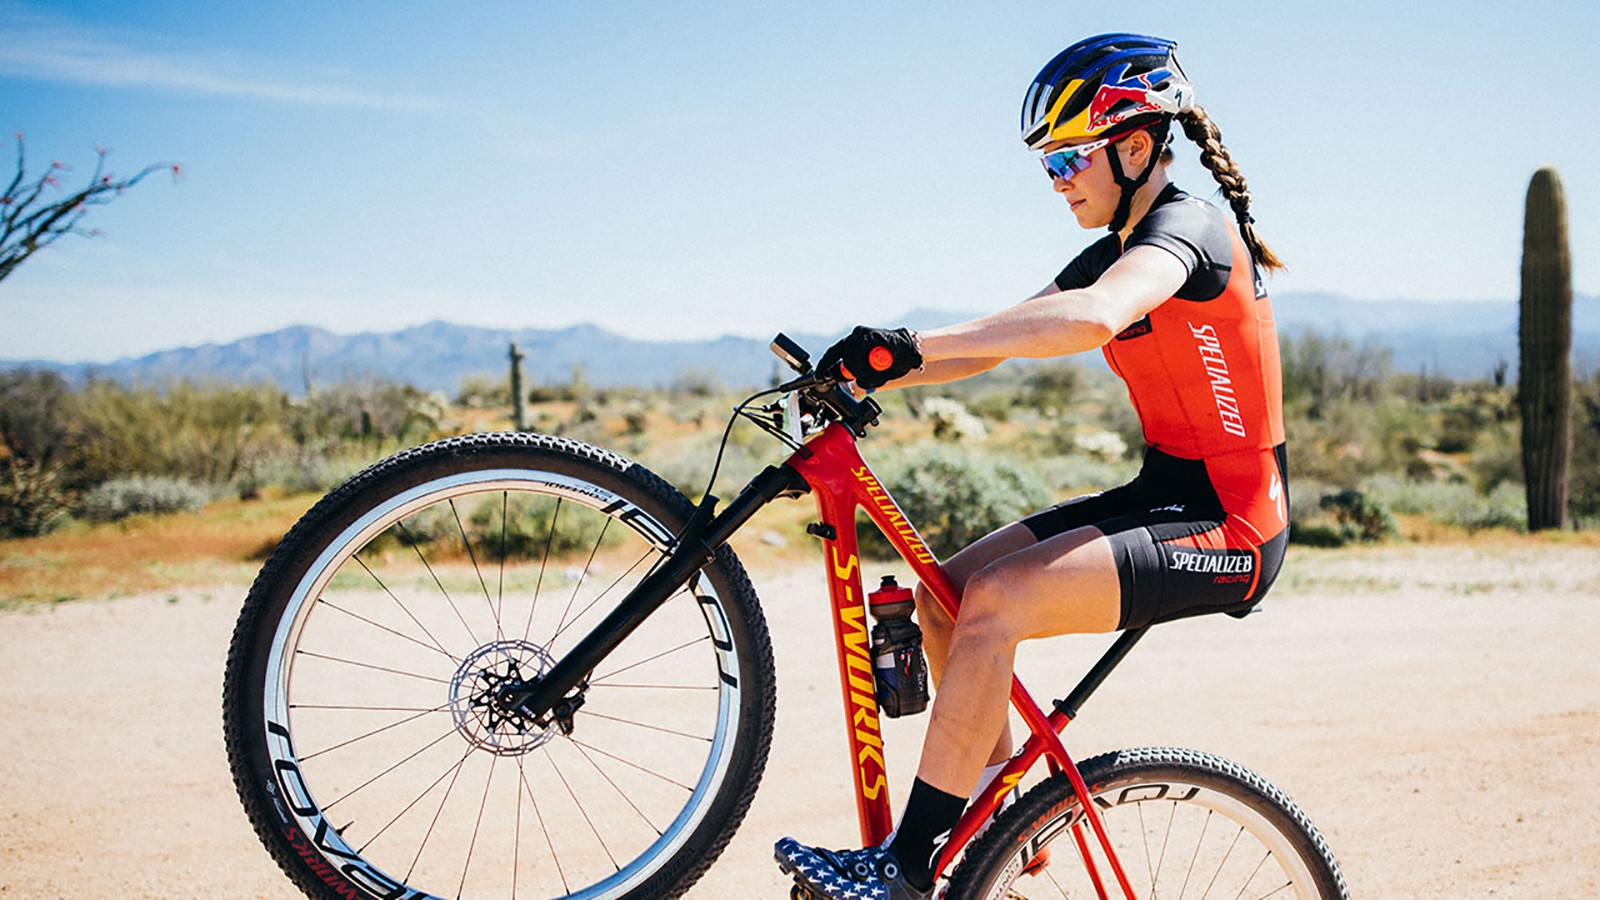 Lookout, roadies: the S-Works Epic Hardtail is lighter than the S-Works Tarmac